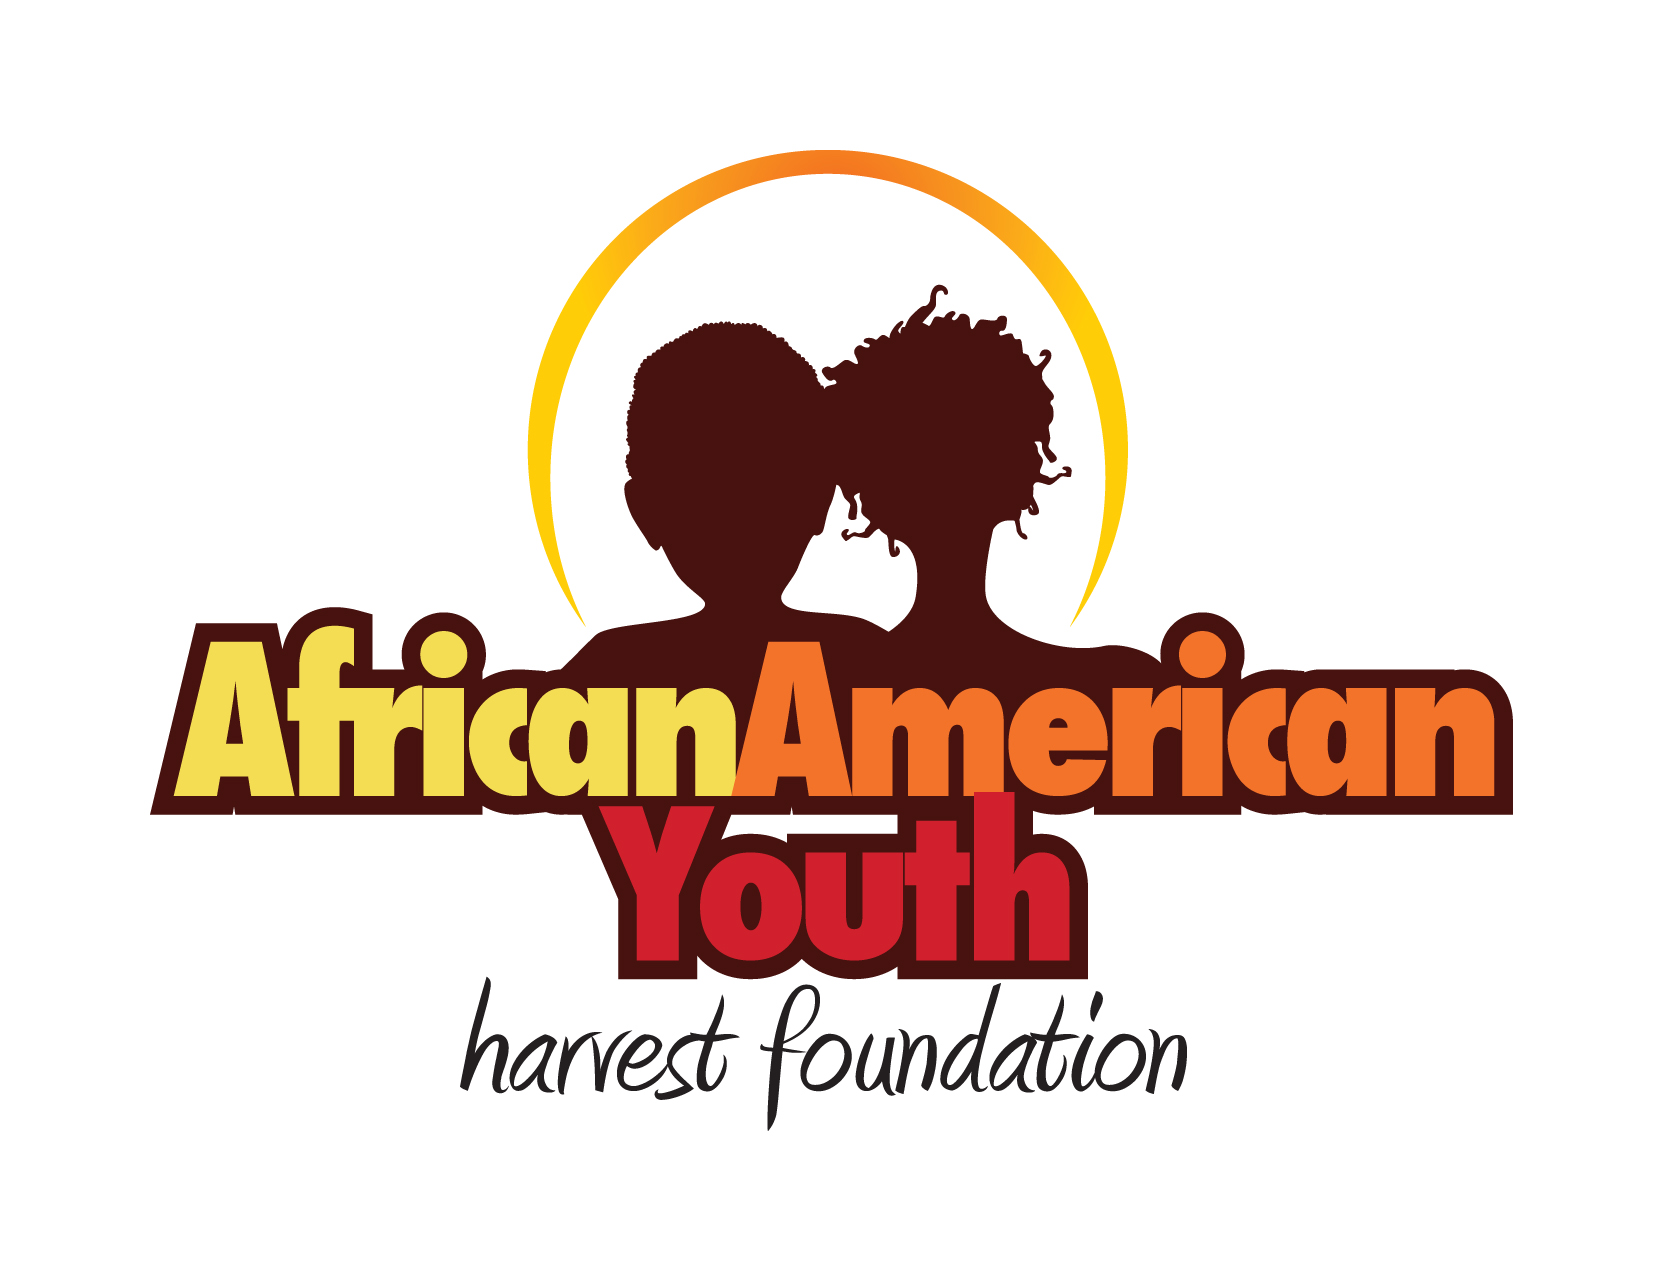 African American Youth Foundation